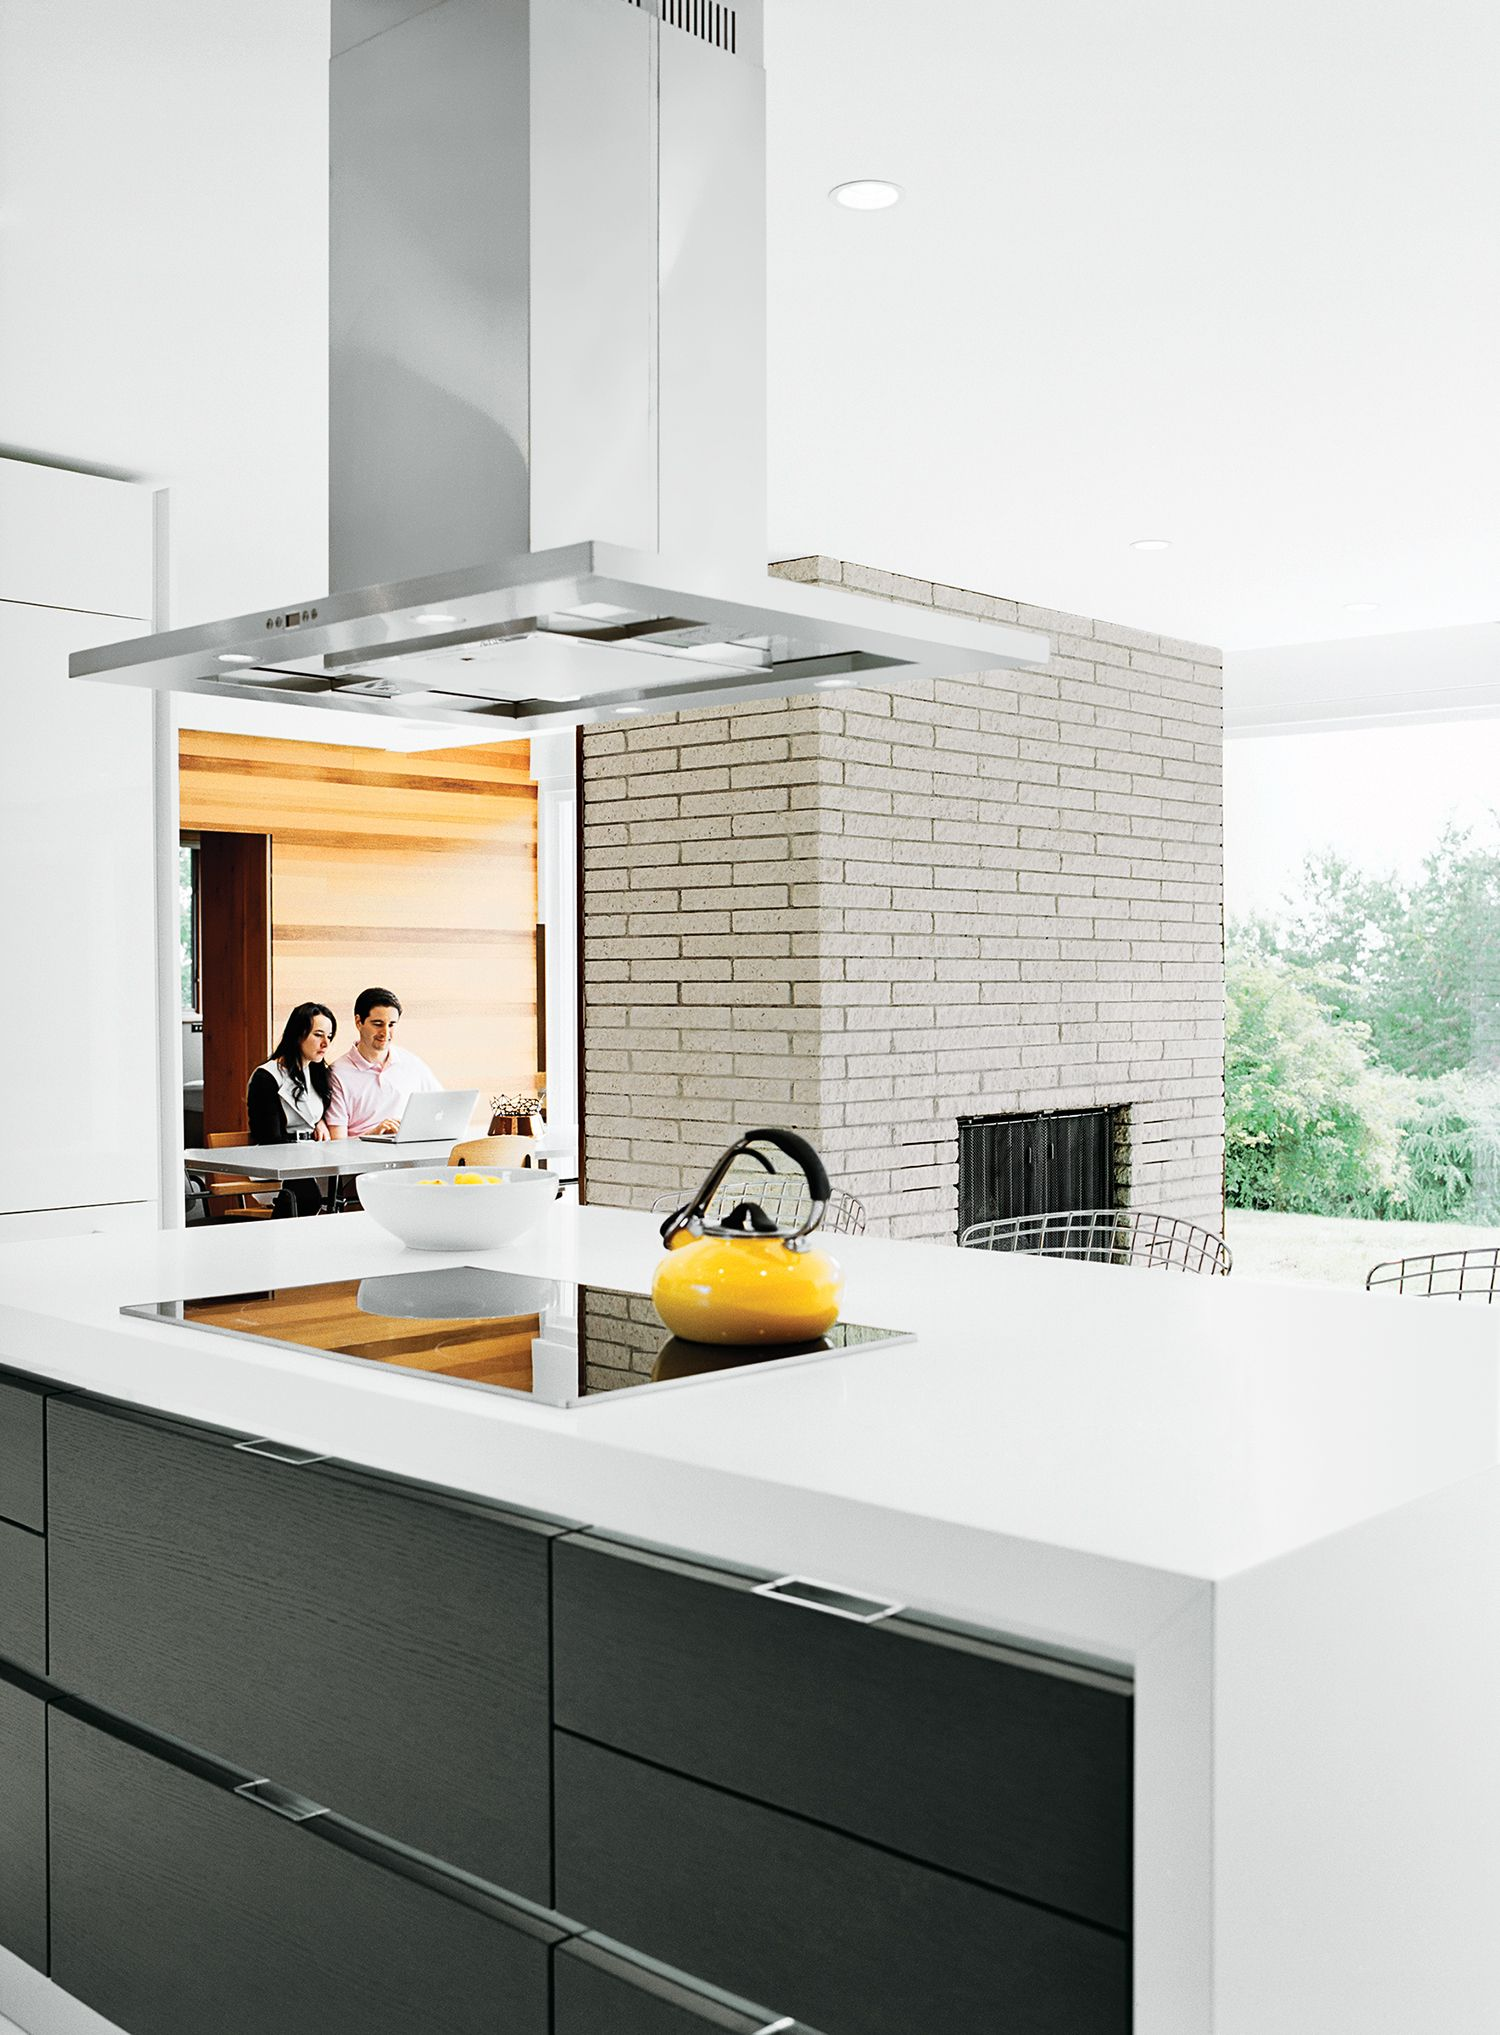 The cooktop and oven are Miele, the counter-top is Caesarstone, and ...